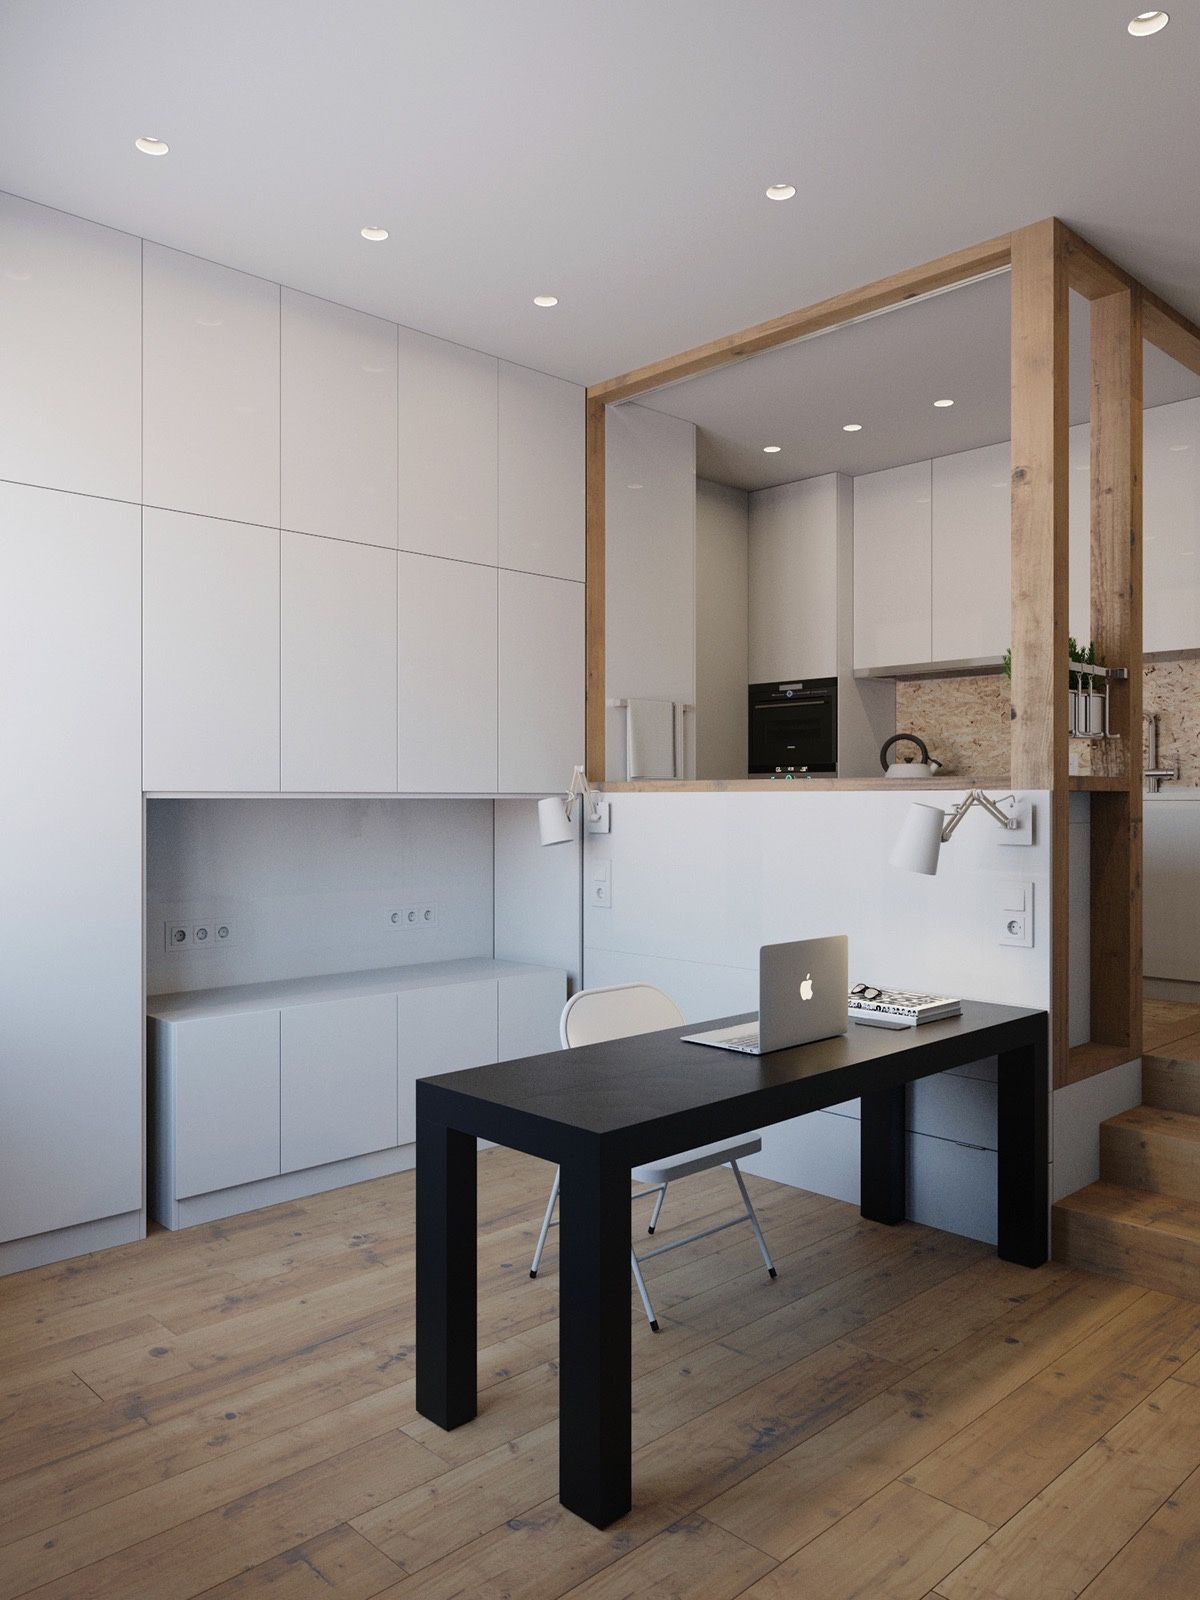 Merveilleux Not Only A Bed Header, The Reverse Of The Kitchen Sink Forms A Partition  For Different Living Spaces. Inserting A Table And Chair, The Space Becomes  An ...